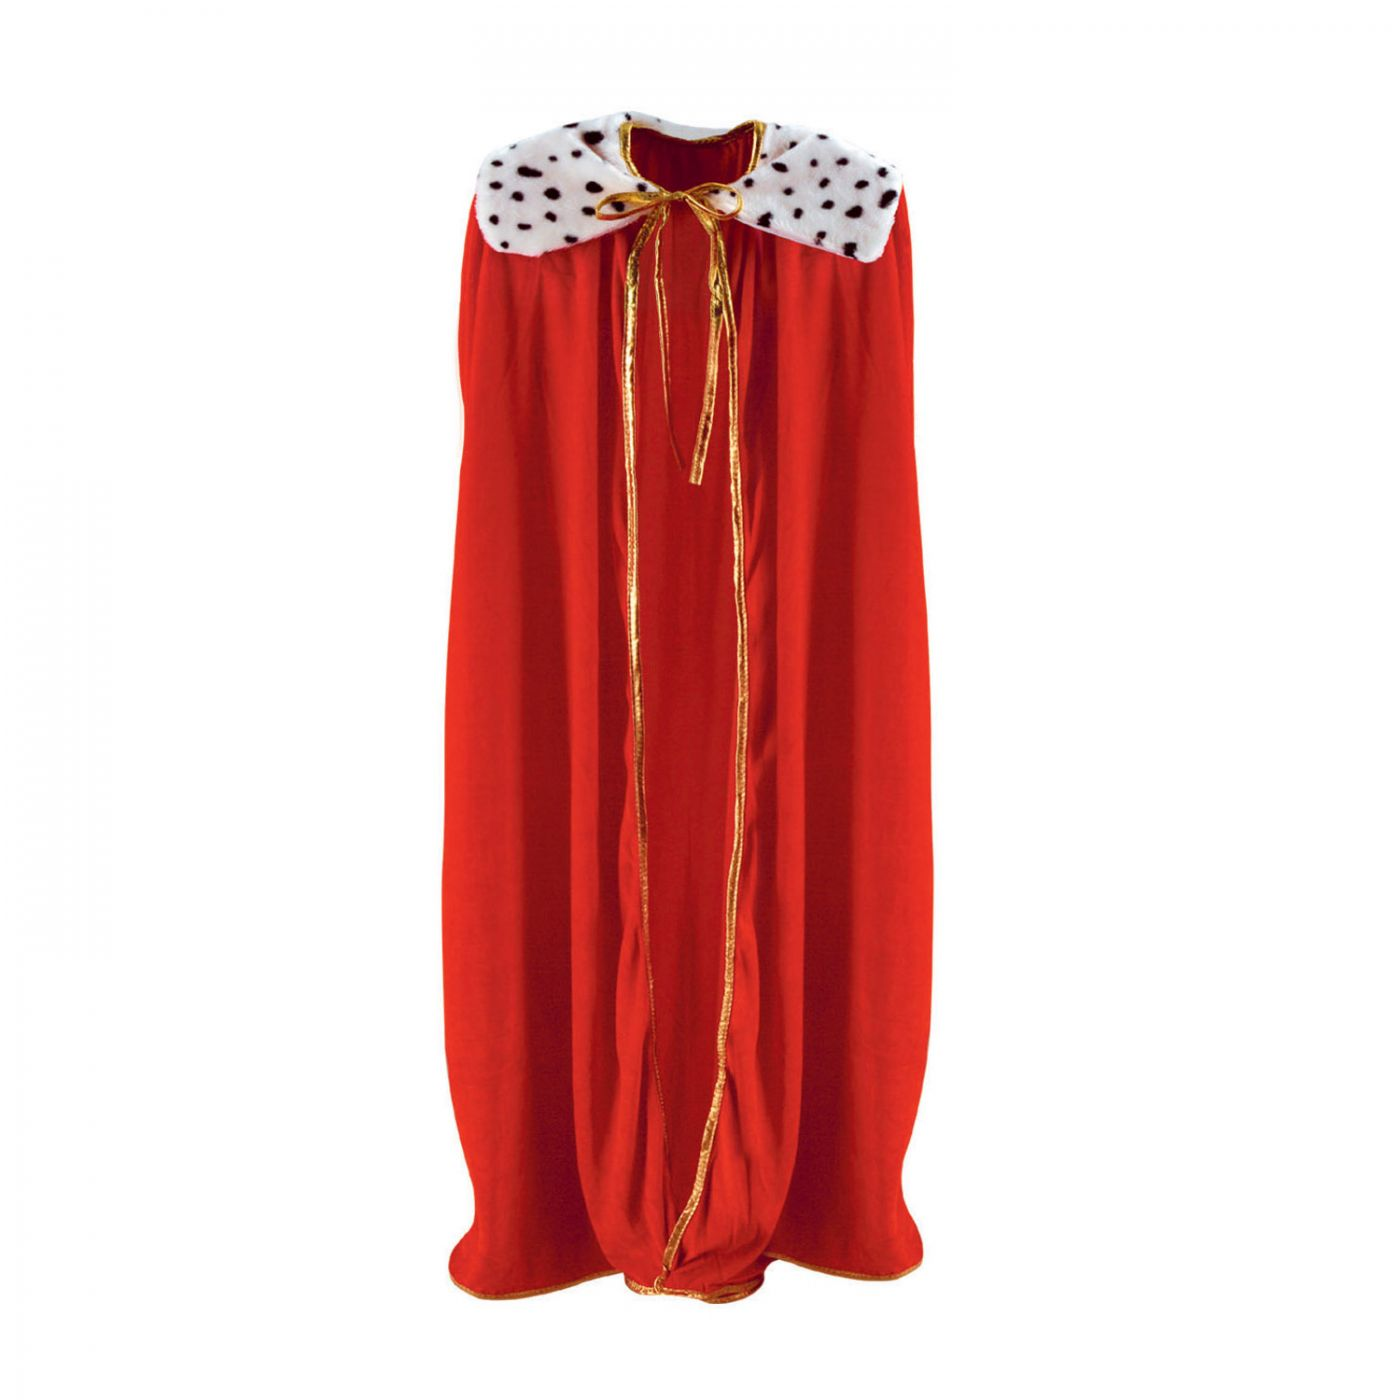 Image of Adult King/Queen Robe (1)